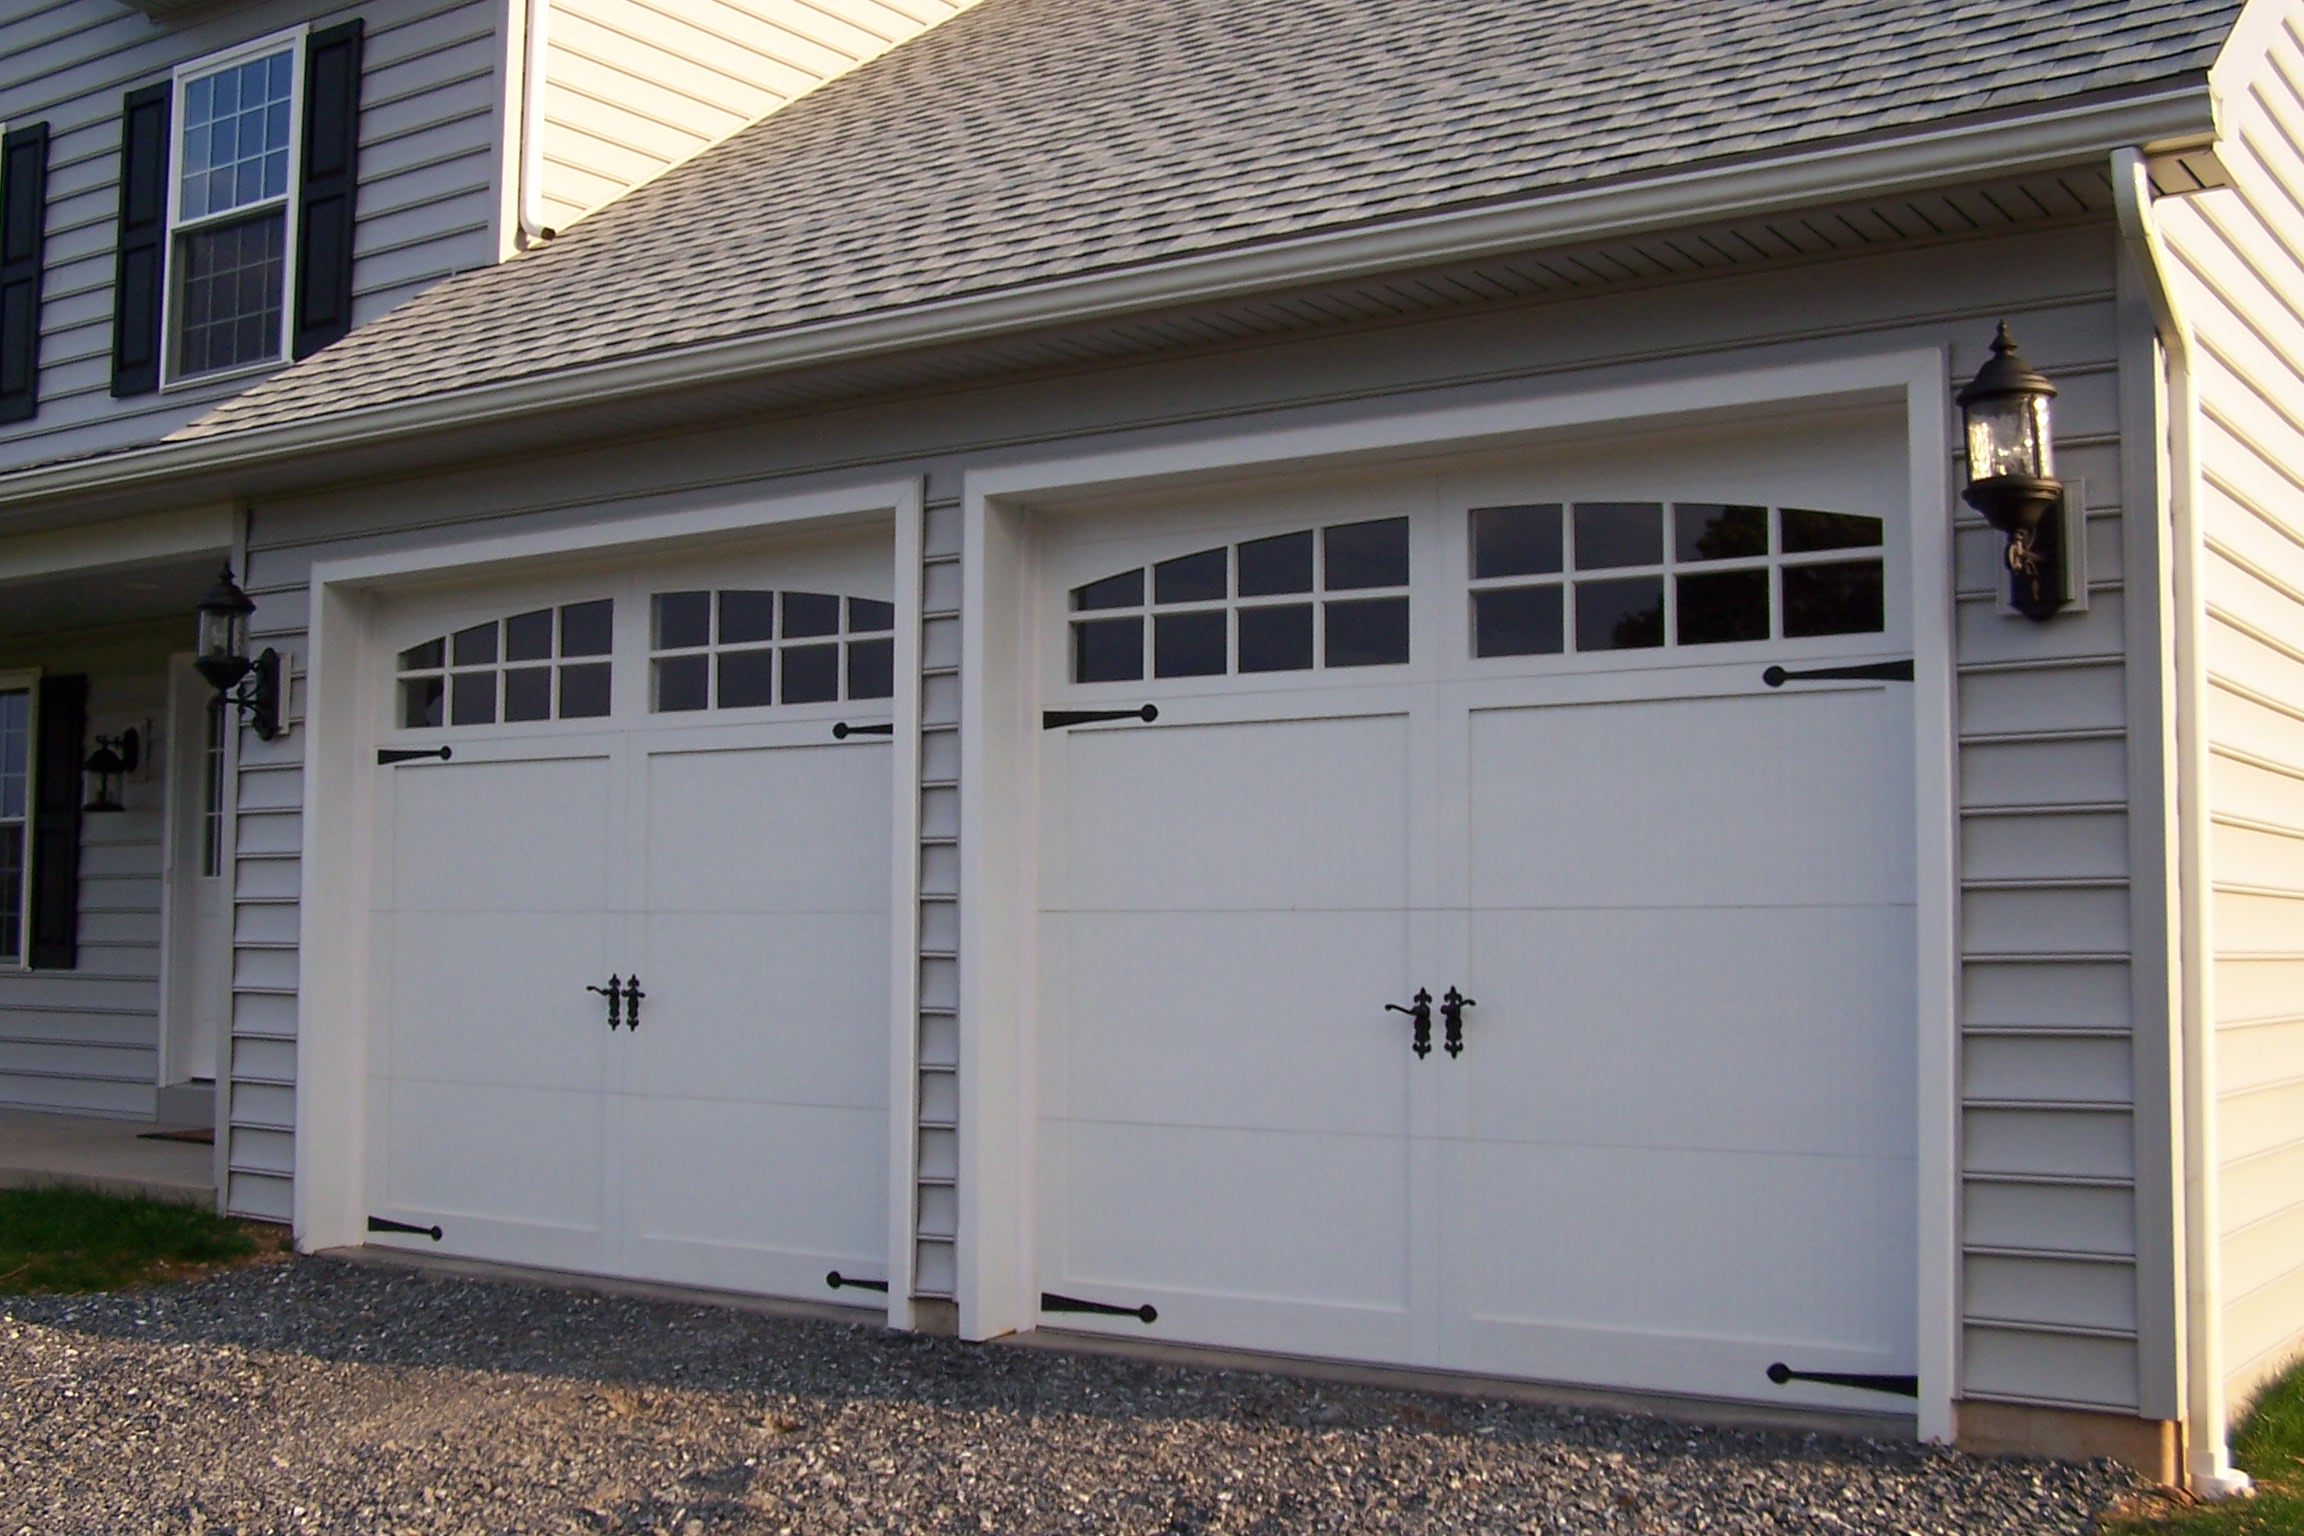 Minimum height of garage door - Sectional Type Steel With Exterior Cladding Overhead Garage Doors In The Style Of Old Carriage House Doors